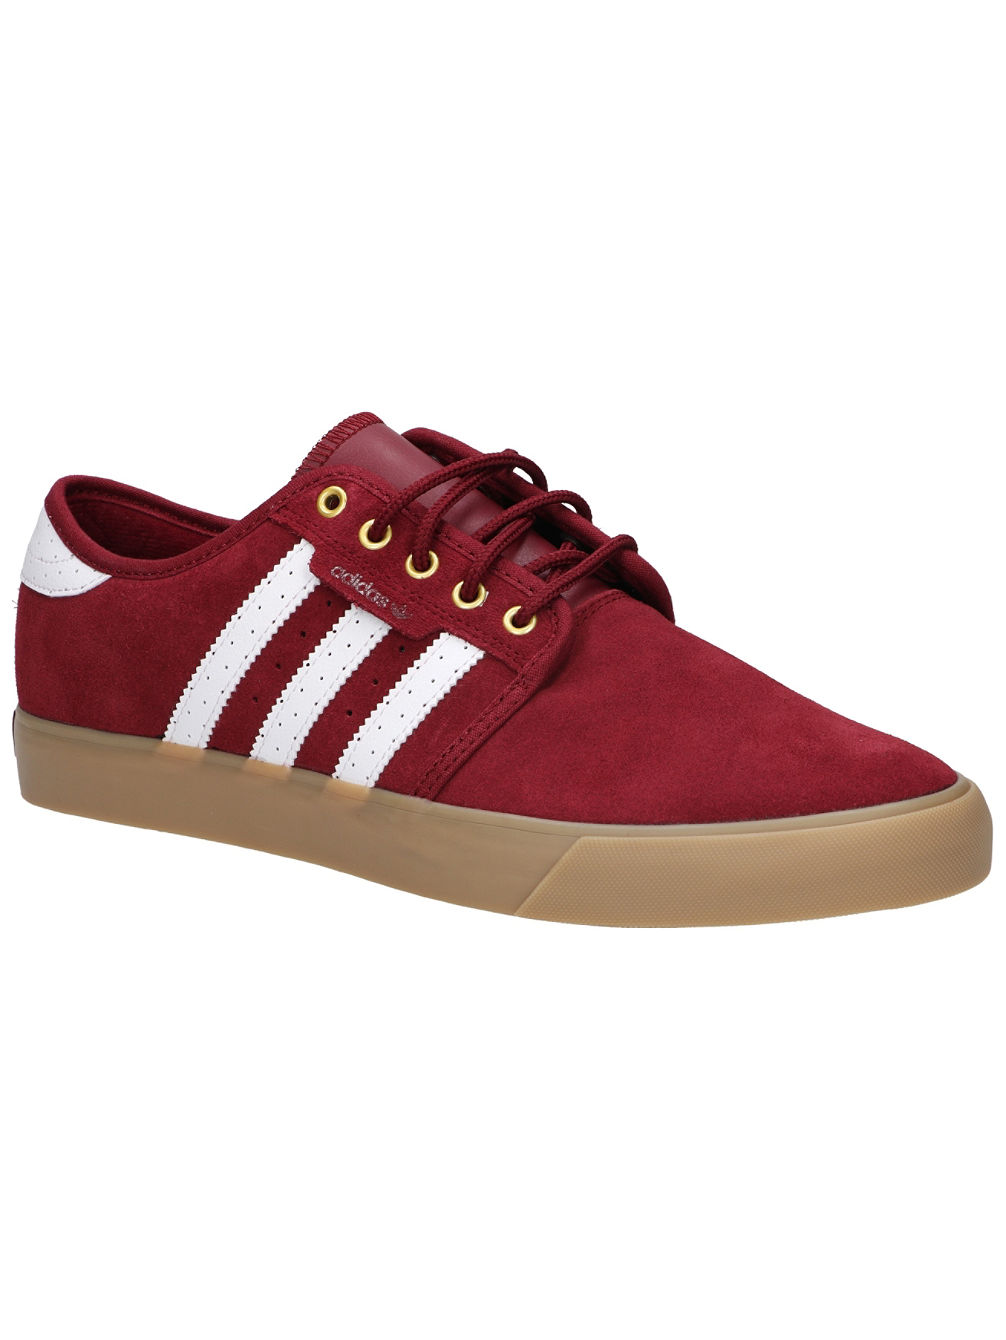 new style c9ef1 3a627 adidas Skateboarding Seeley Skate Shoes